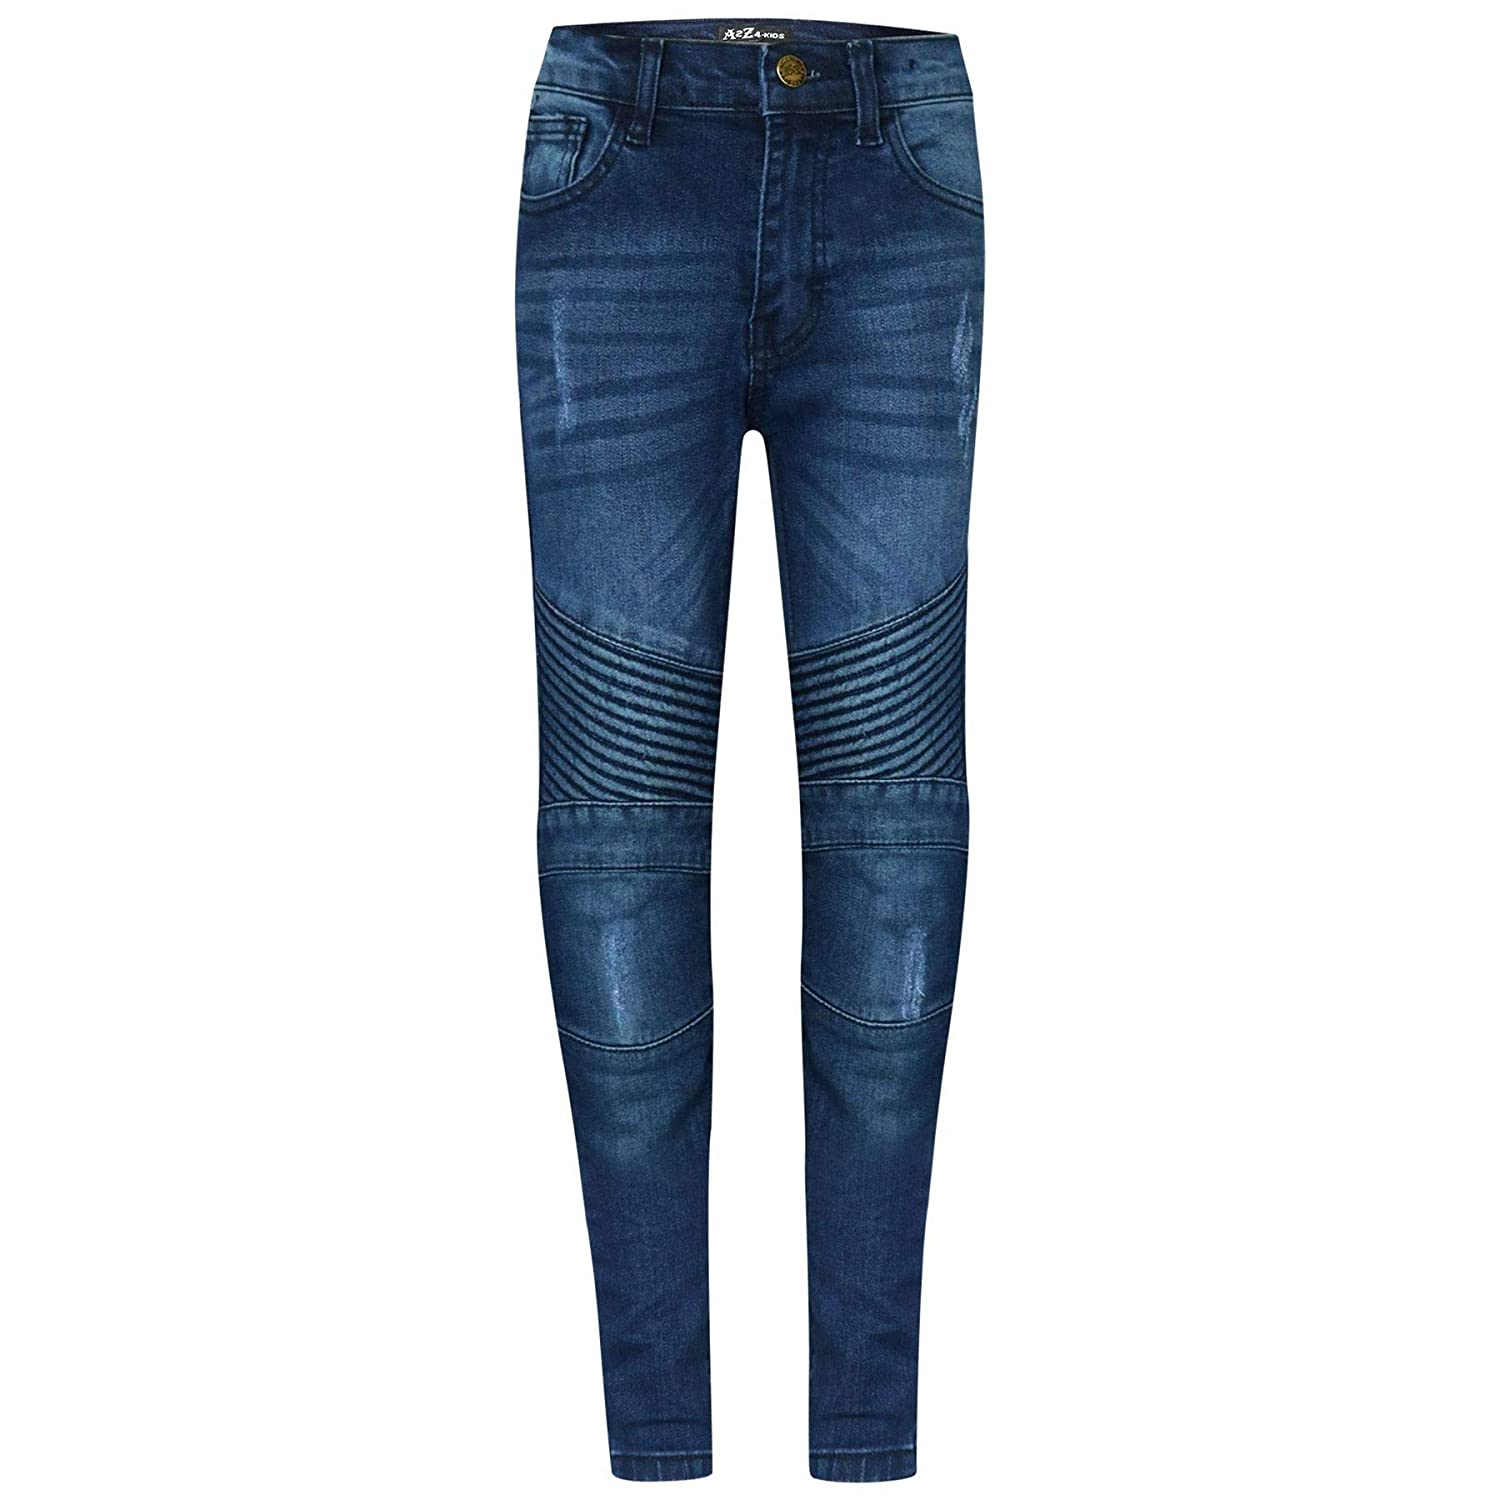 A2Z 4 Kids® Kids Boys Stretchy Jeans Designer's Mid Blue Ripped Knee Drape Panel Denim Pants Fashion Slim Fit Trousers New Age 5 6 7 8 9 10 11 12 13 Years